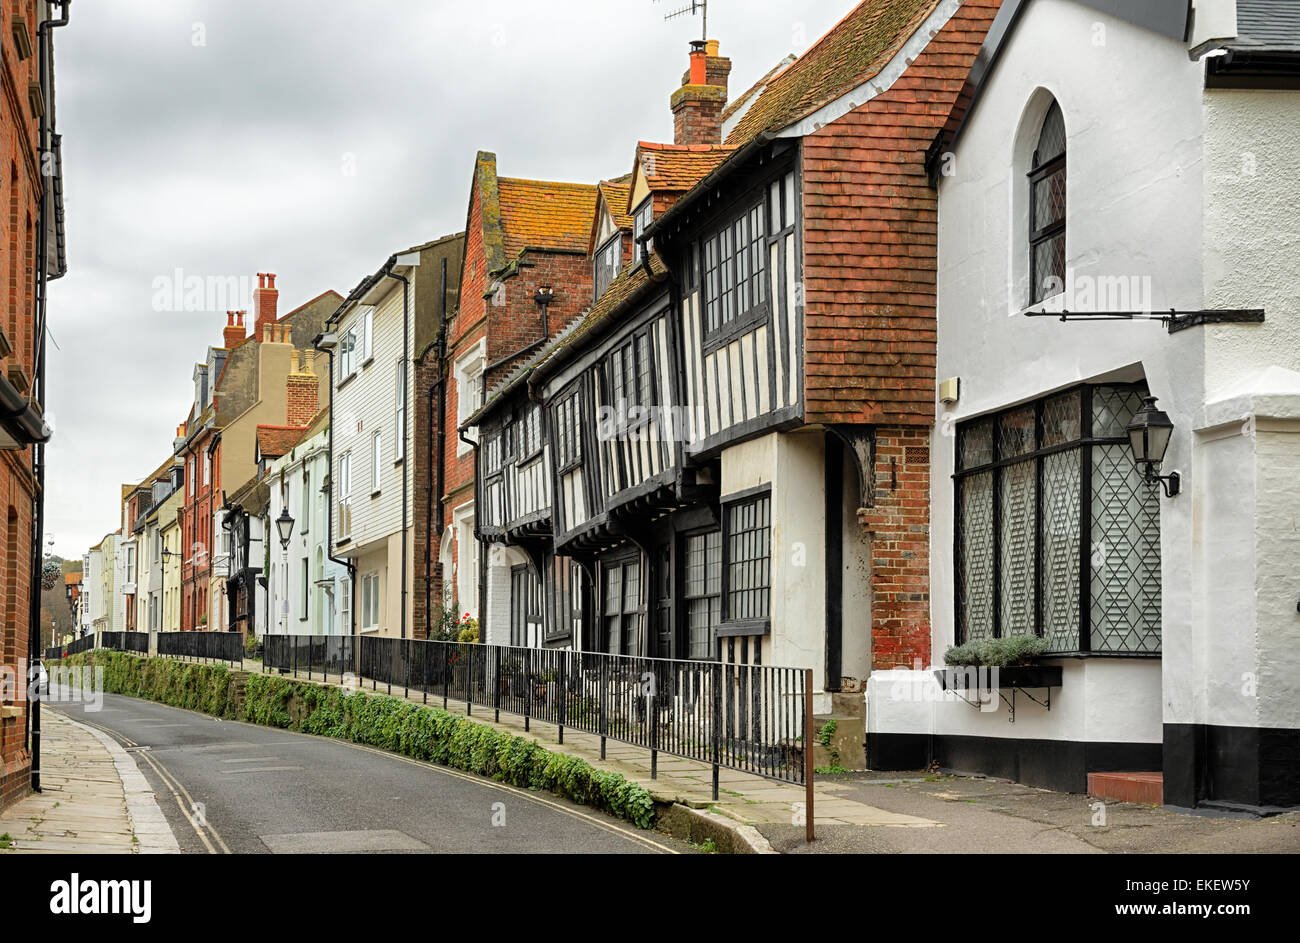 Street in the old town, Hastings - Stock Image